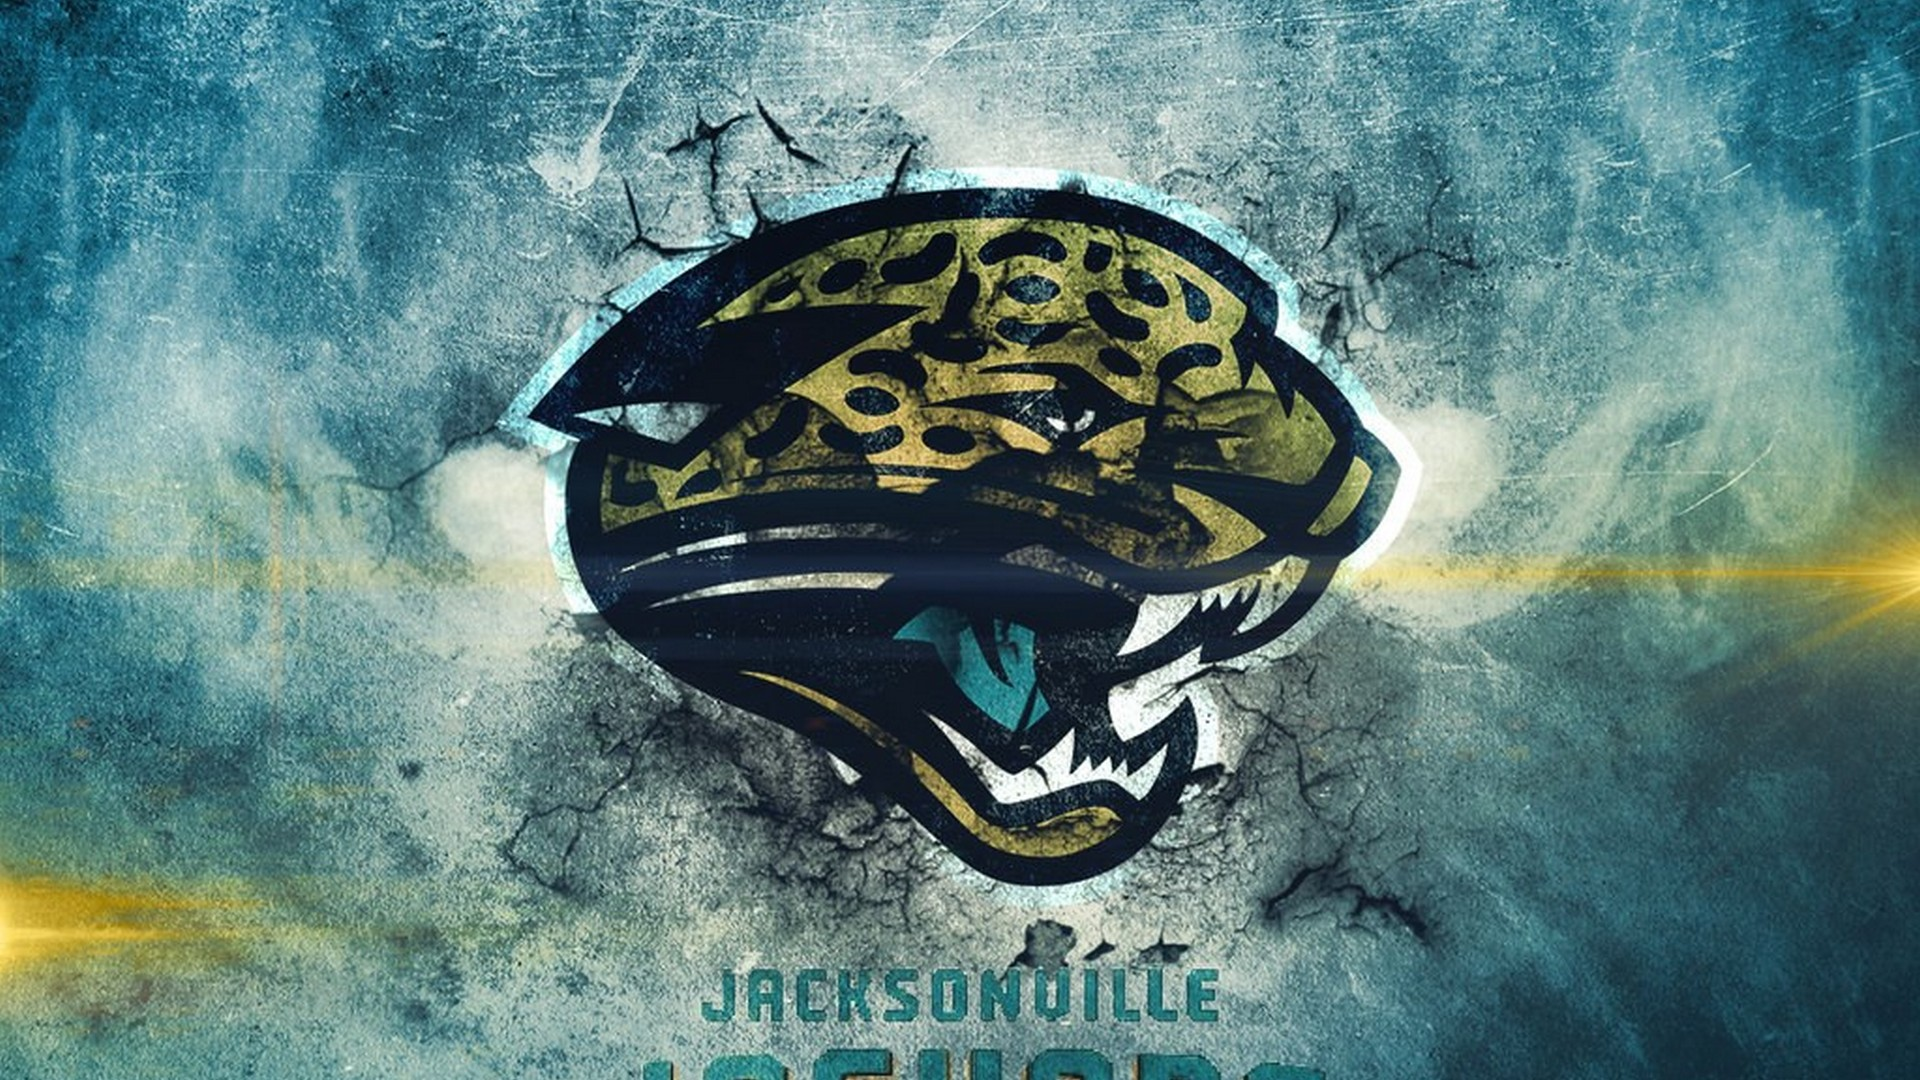 Jacksonville Jaguars Backgrounds HD 2019 NFL Football Wallpapers 1920x1080